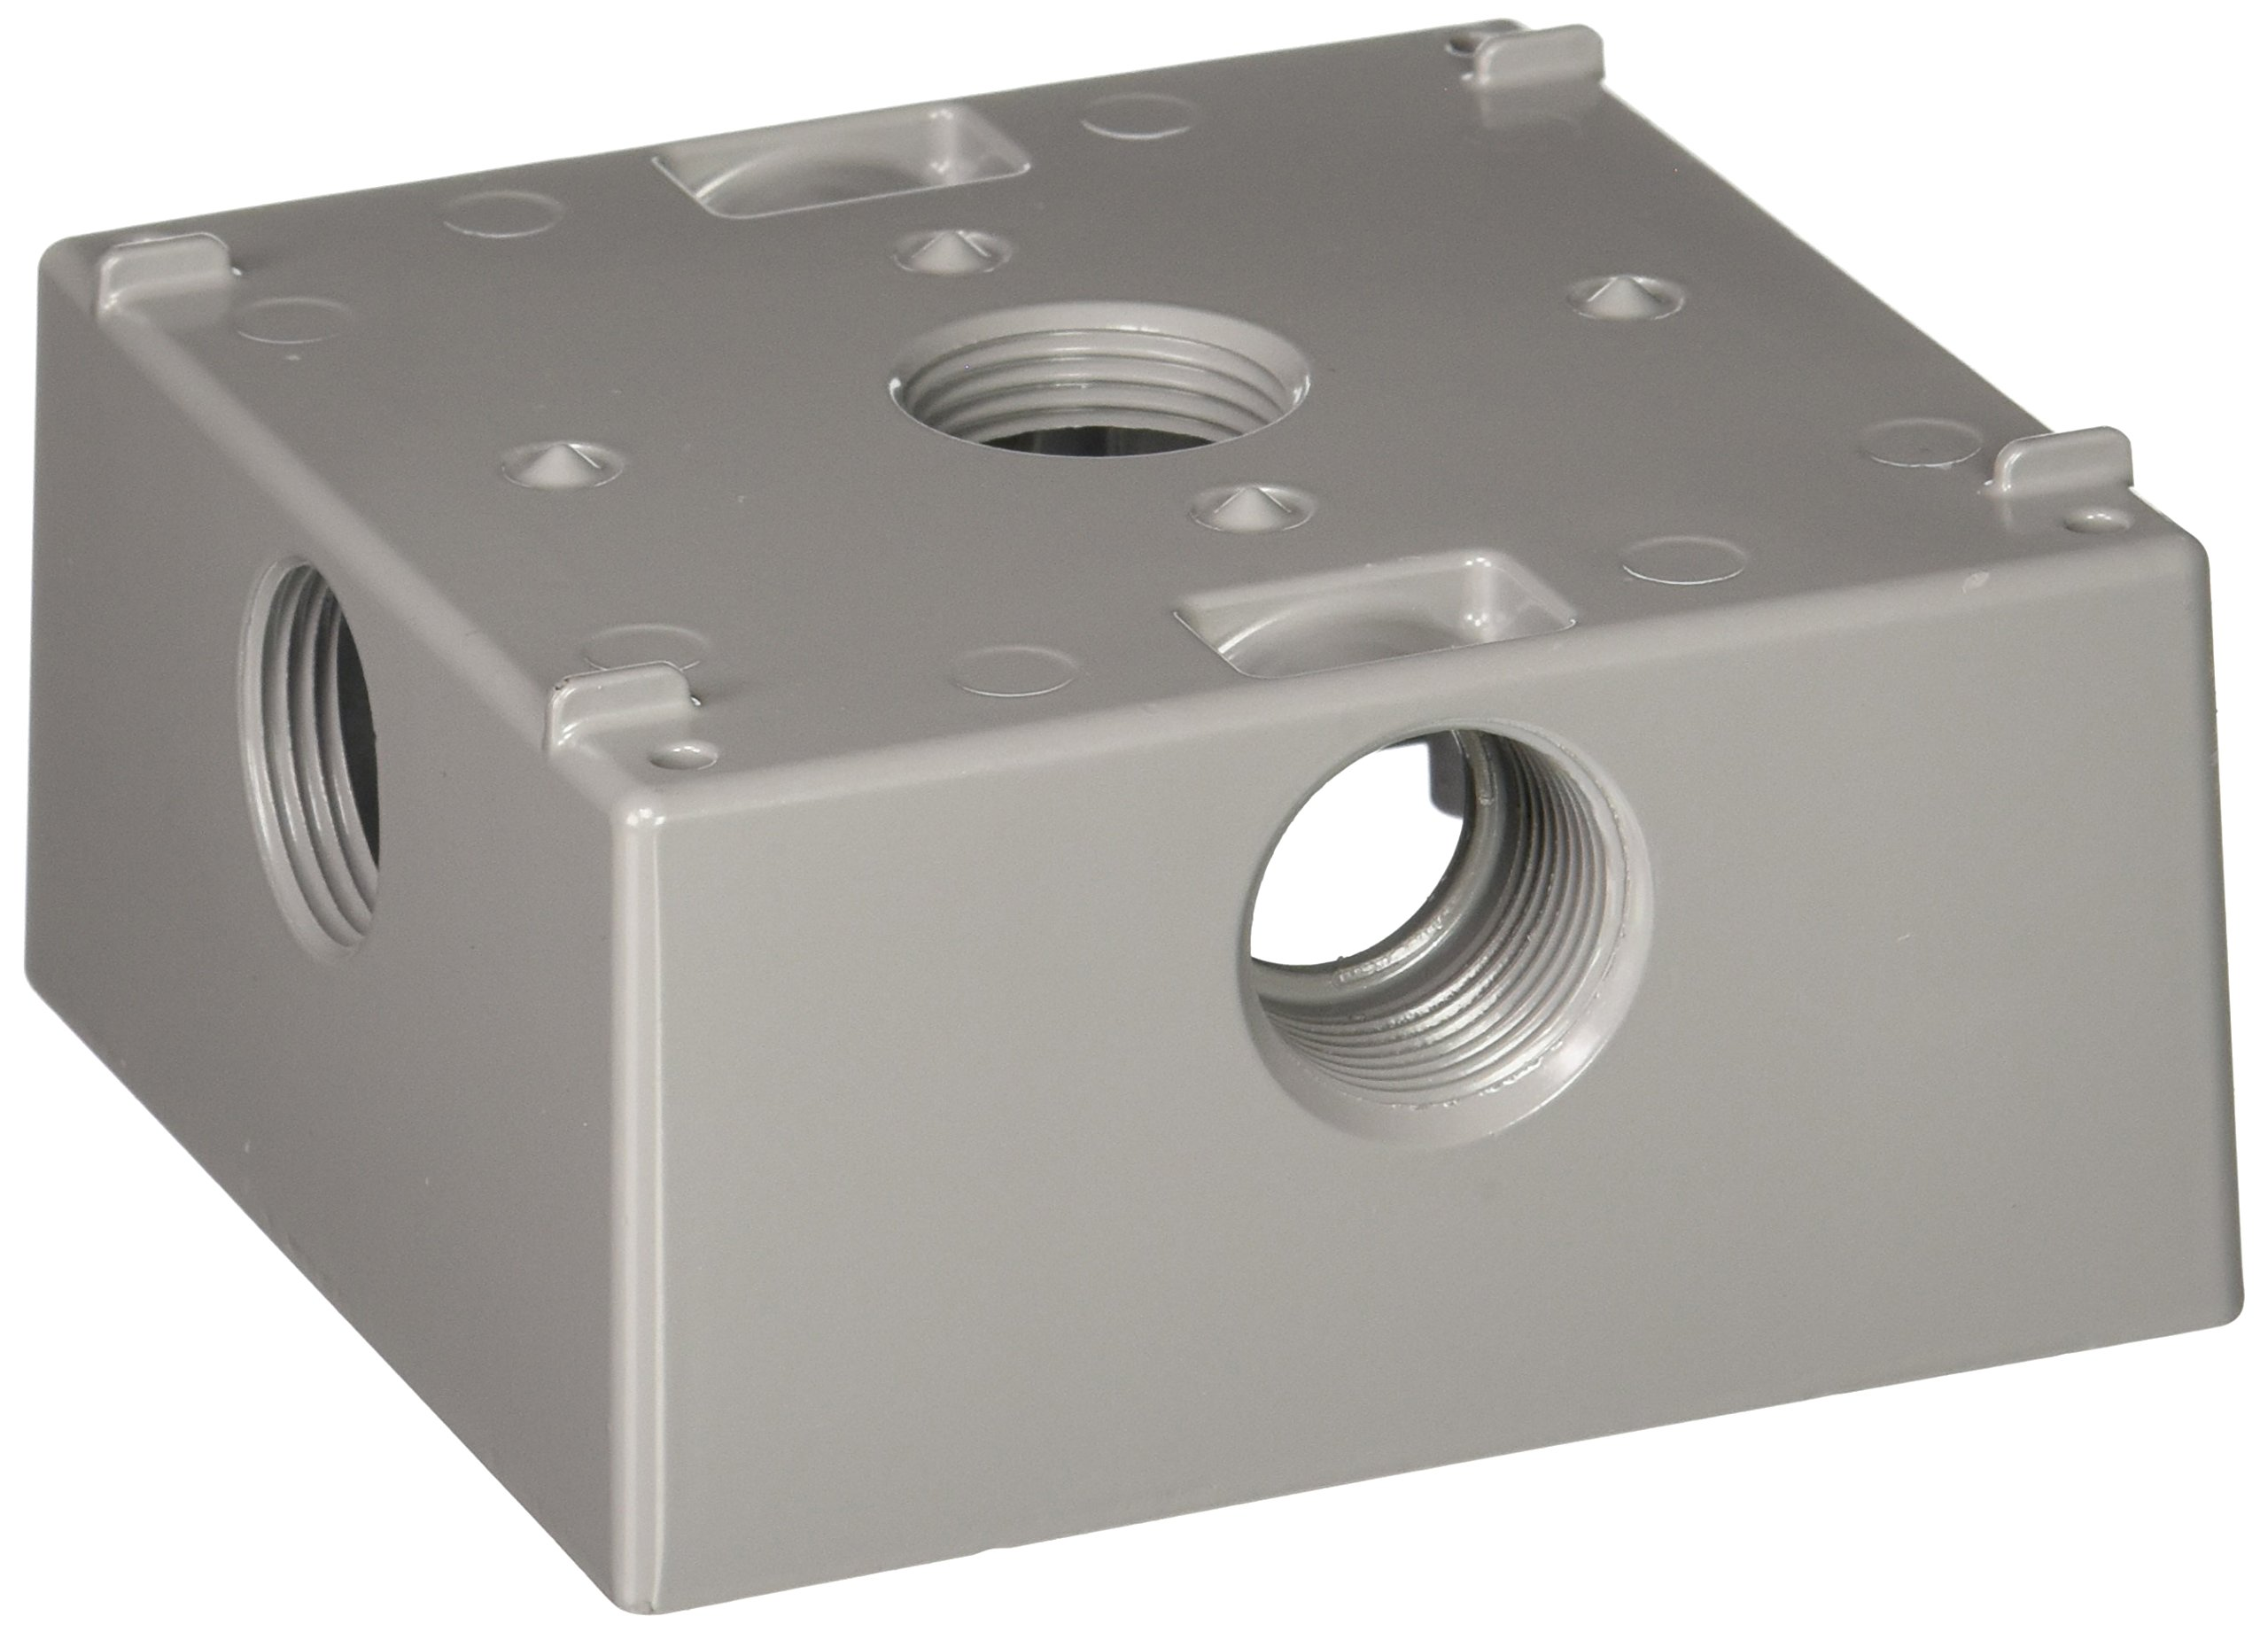 Hubbell-Bell 5342-0 Two Gang 5-3/4-Inch Outlets Weatherproof Box